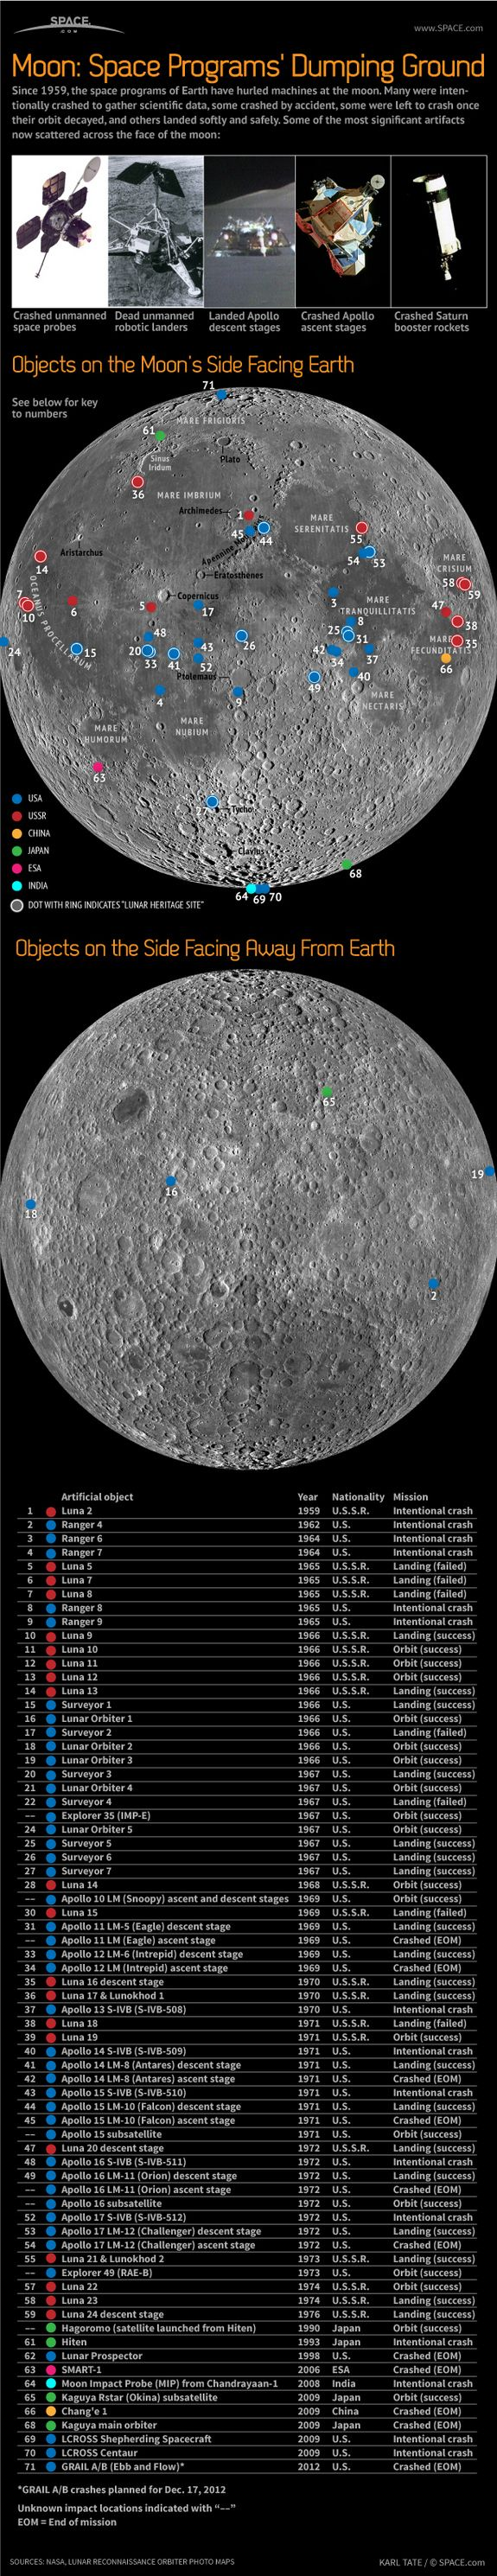 Moon: Space Programs' Dumping Ground (Infographic) by Karl Tate, SPACE.com Infographics ArtistDate: 14 December 2012